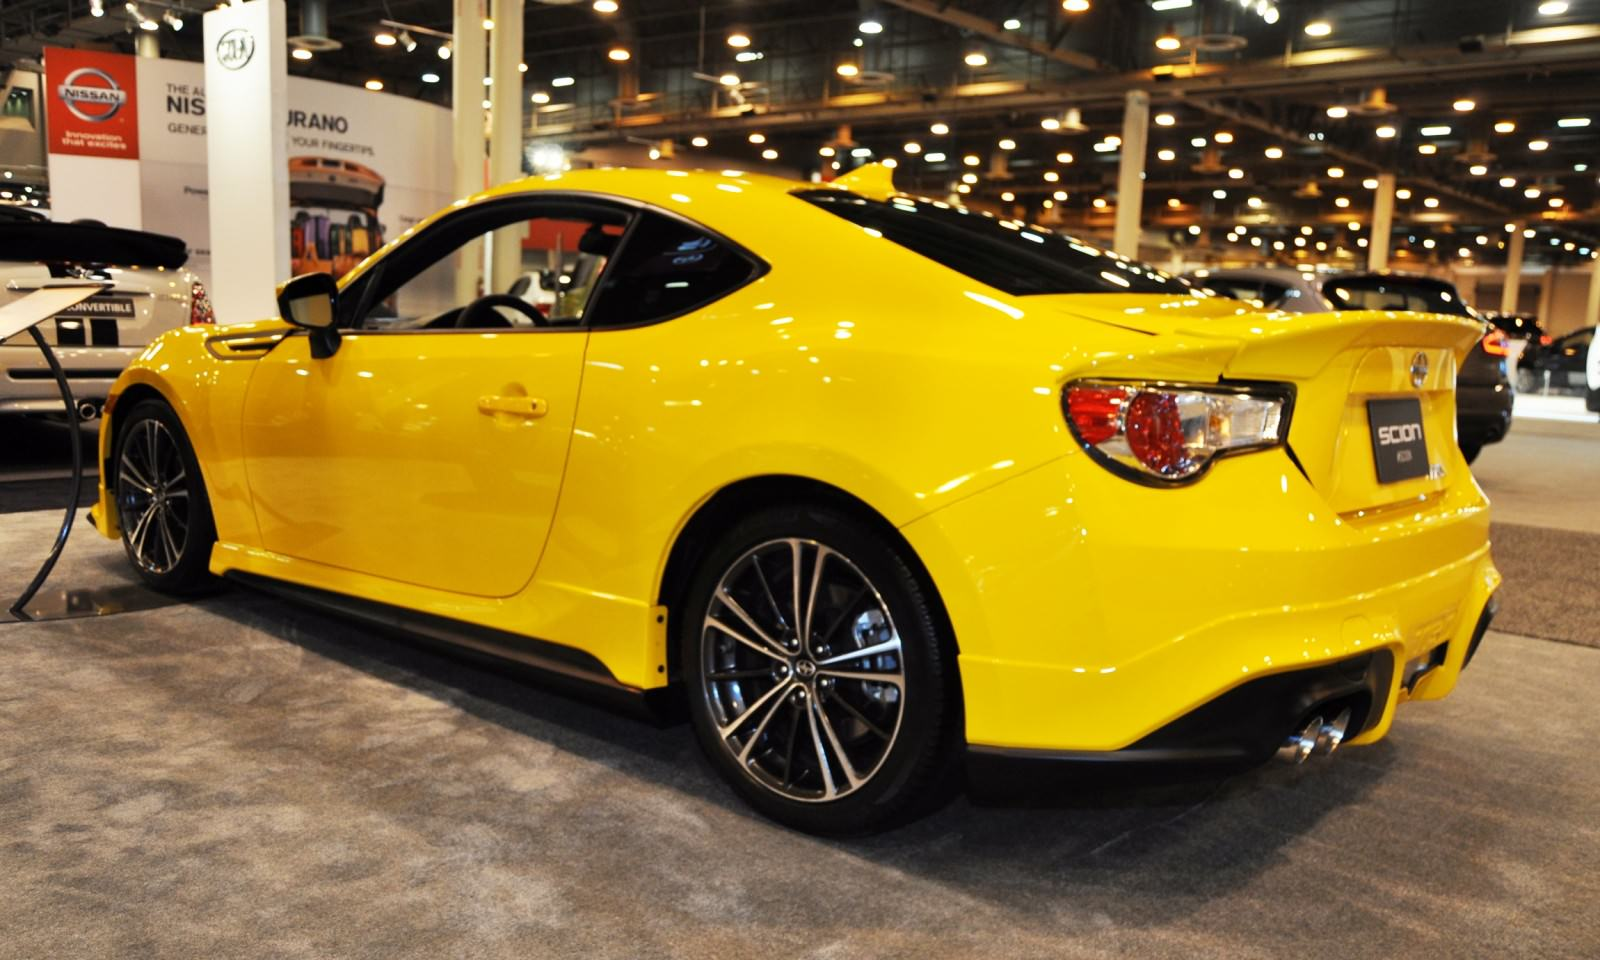 houston auto show 2015 scion fr s rs1 is damn sexy in real life 13. Black Bedroom Furniture Sets. Home Design Ideas